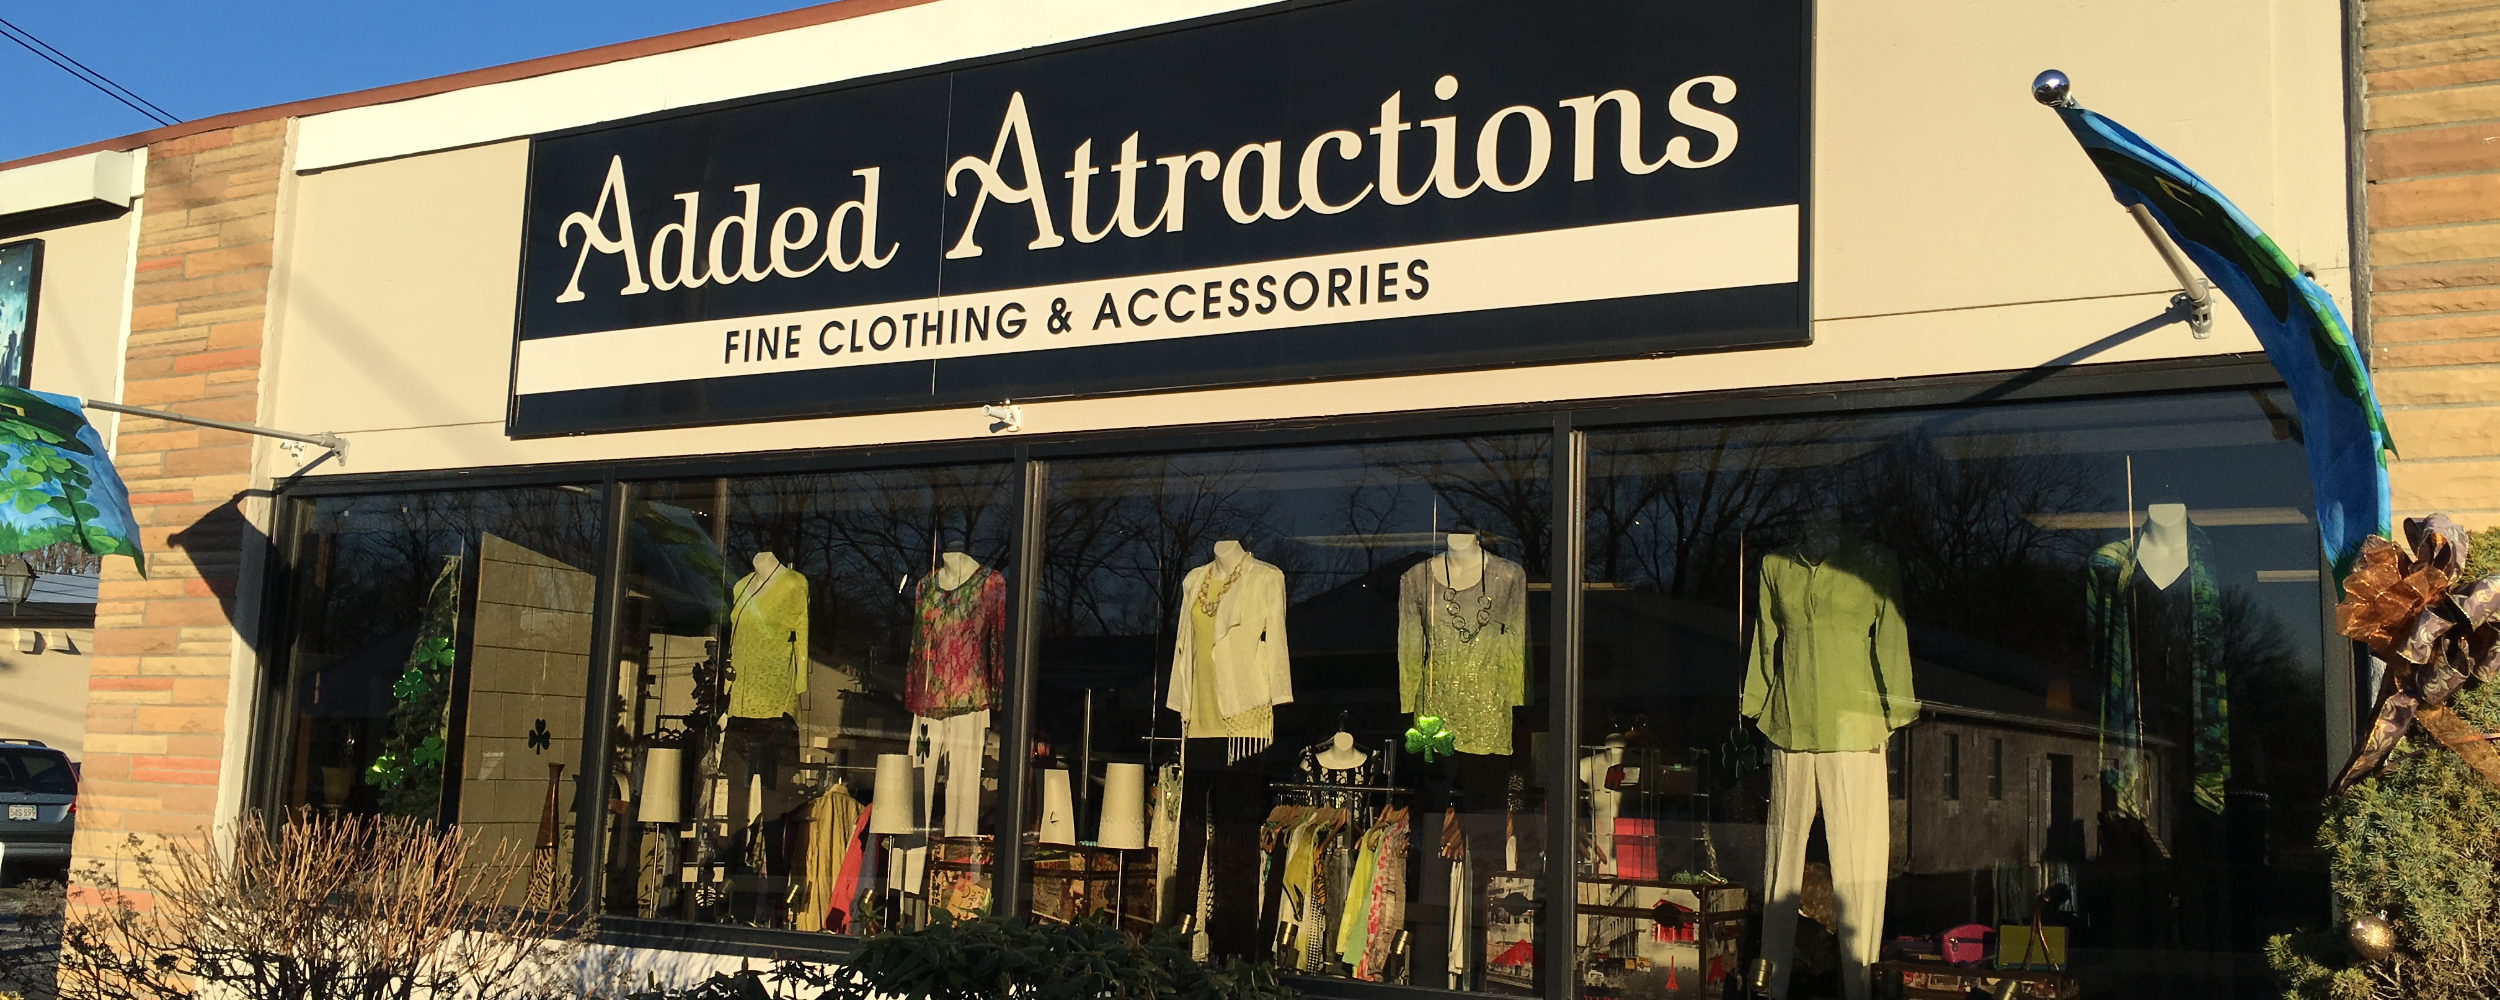 Shoptiques Boutique: Carol K's Added Attractions